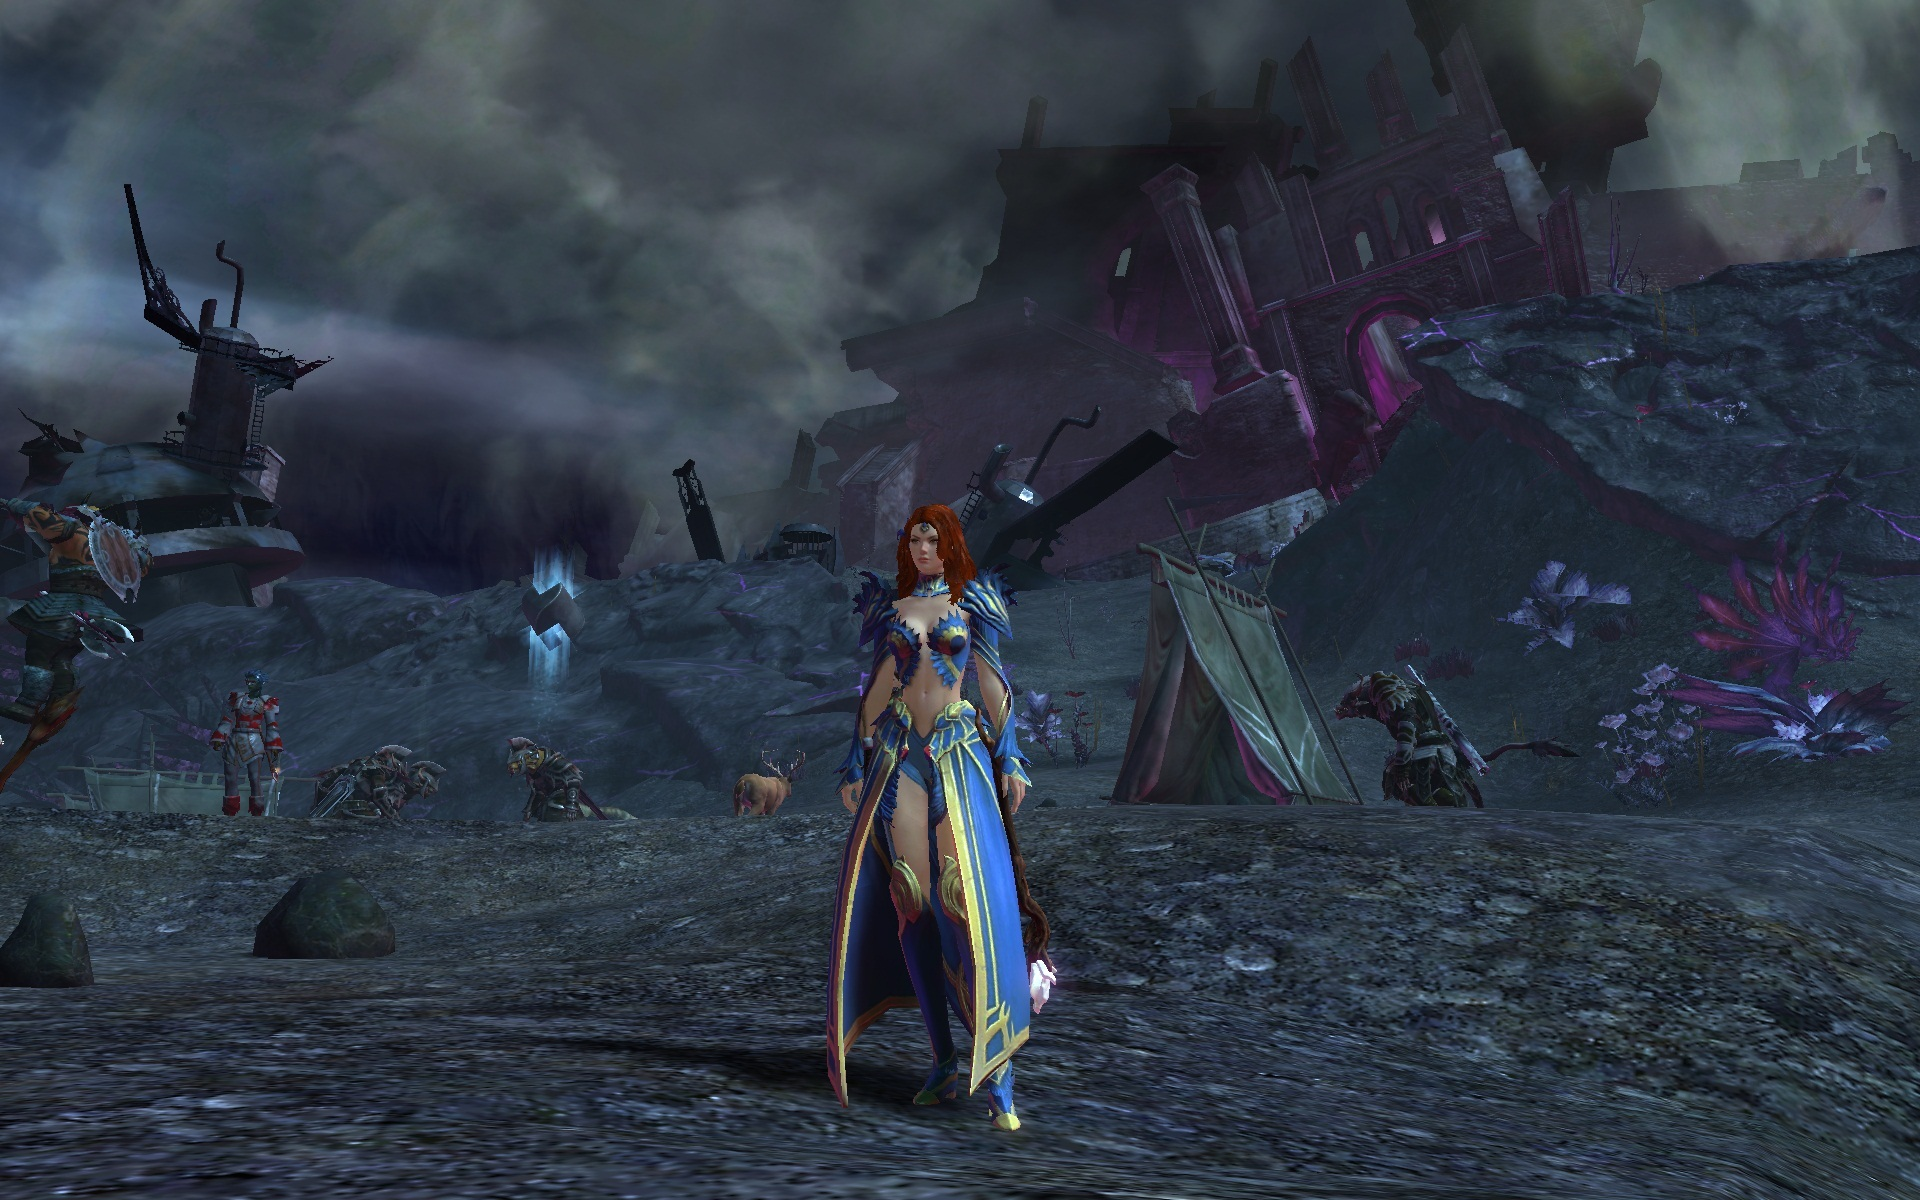 Guild Wars Elementalist Wallpaper Post a Picture of Your